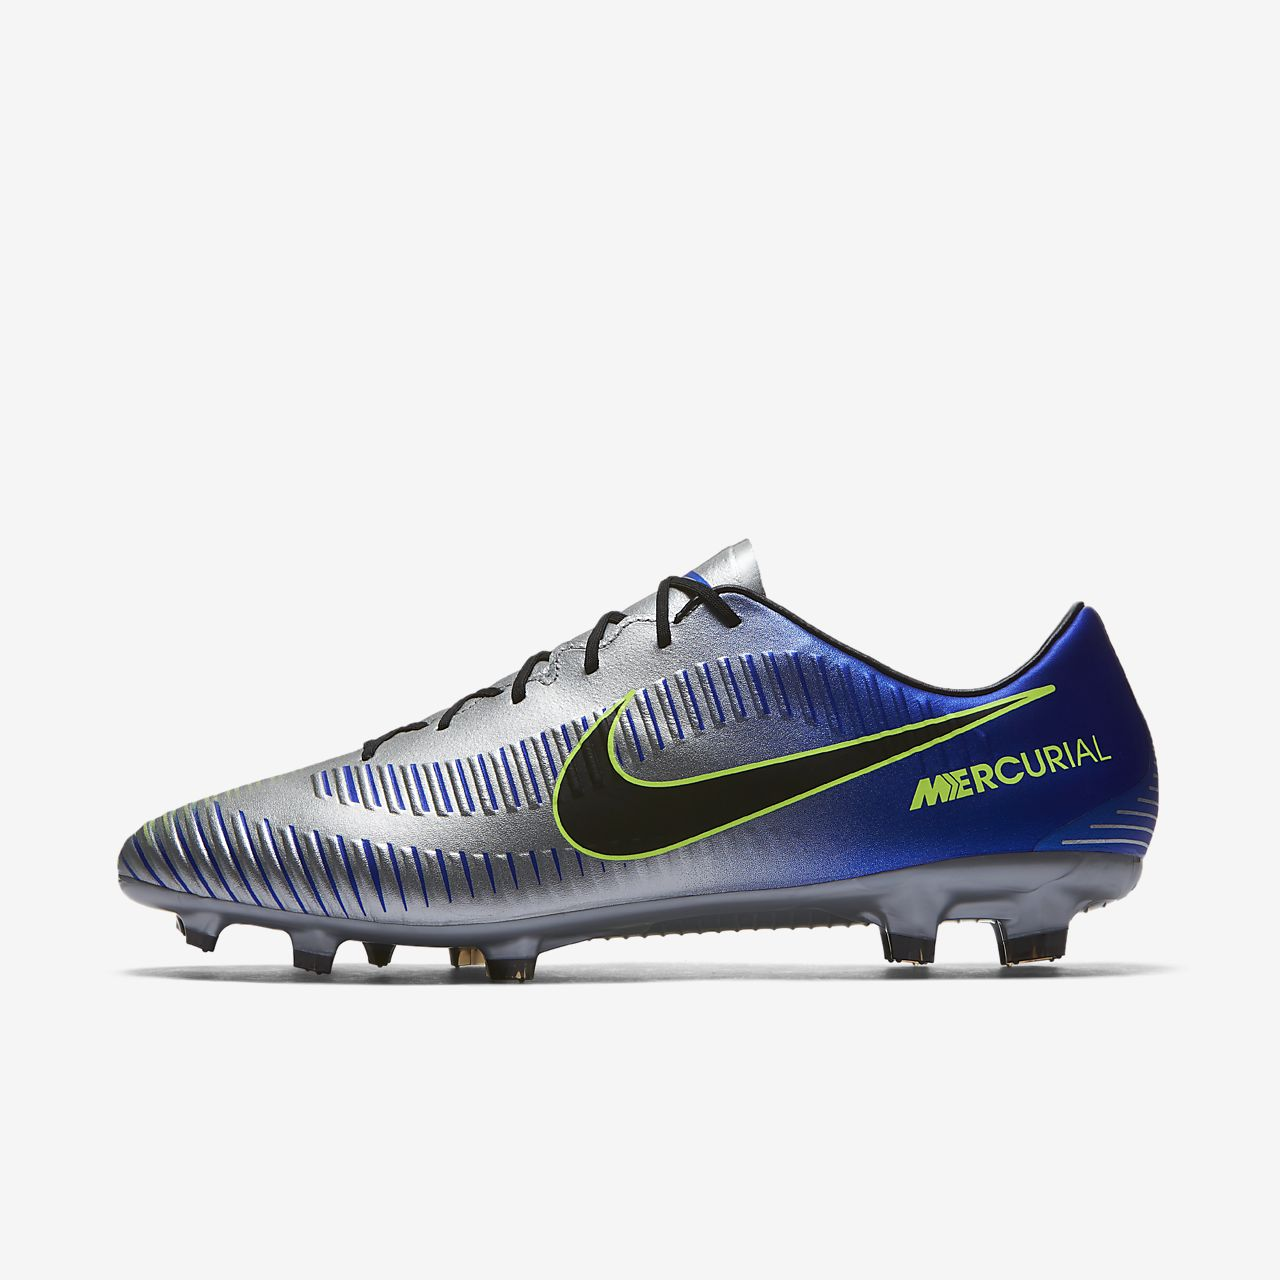 reputable site f1835 fac8e ... wholesale nike mercurial veloce iii neymar firm ground football boot  9b04f b1326